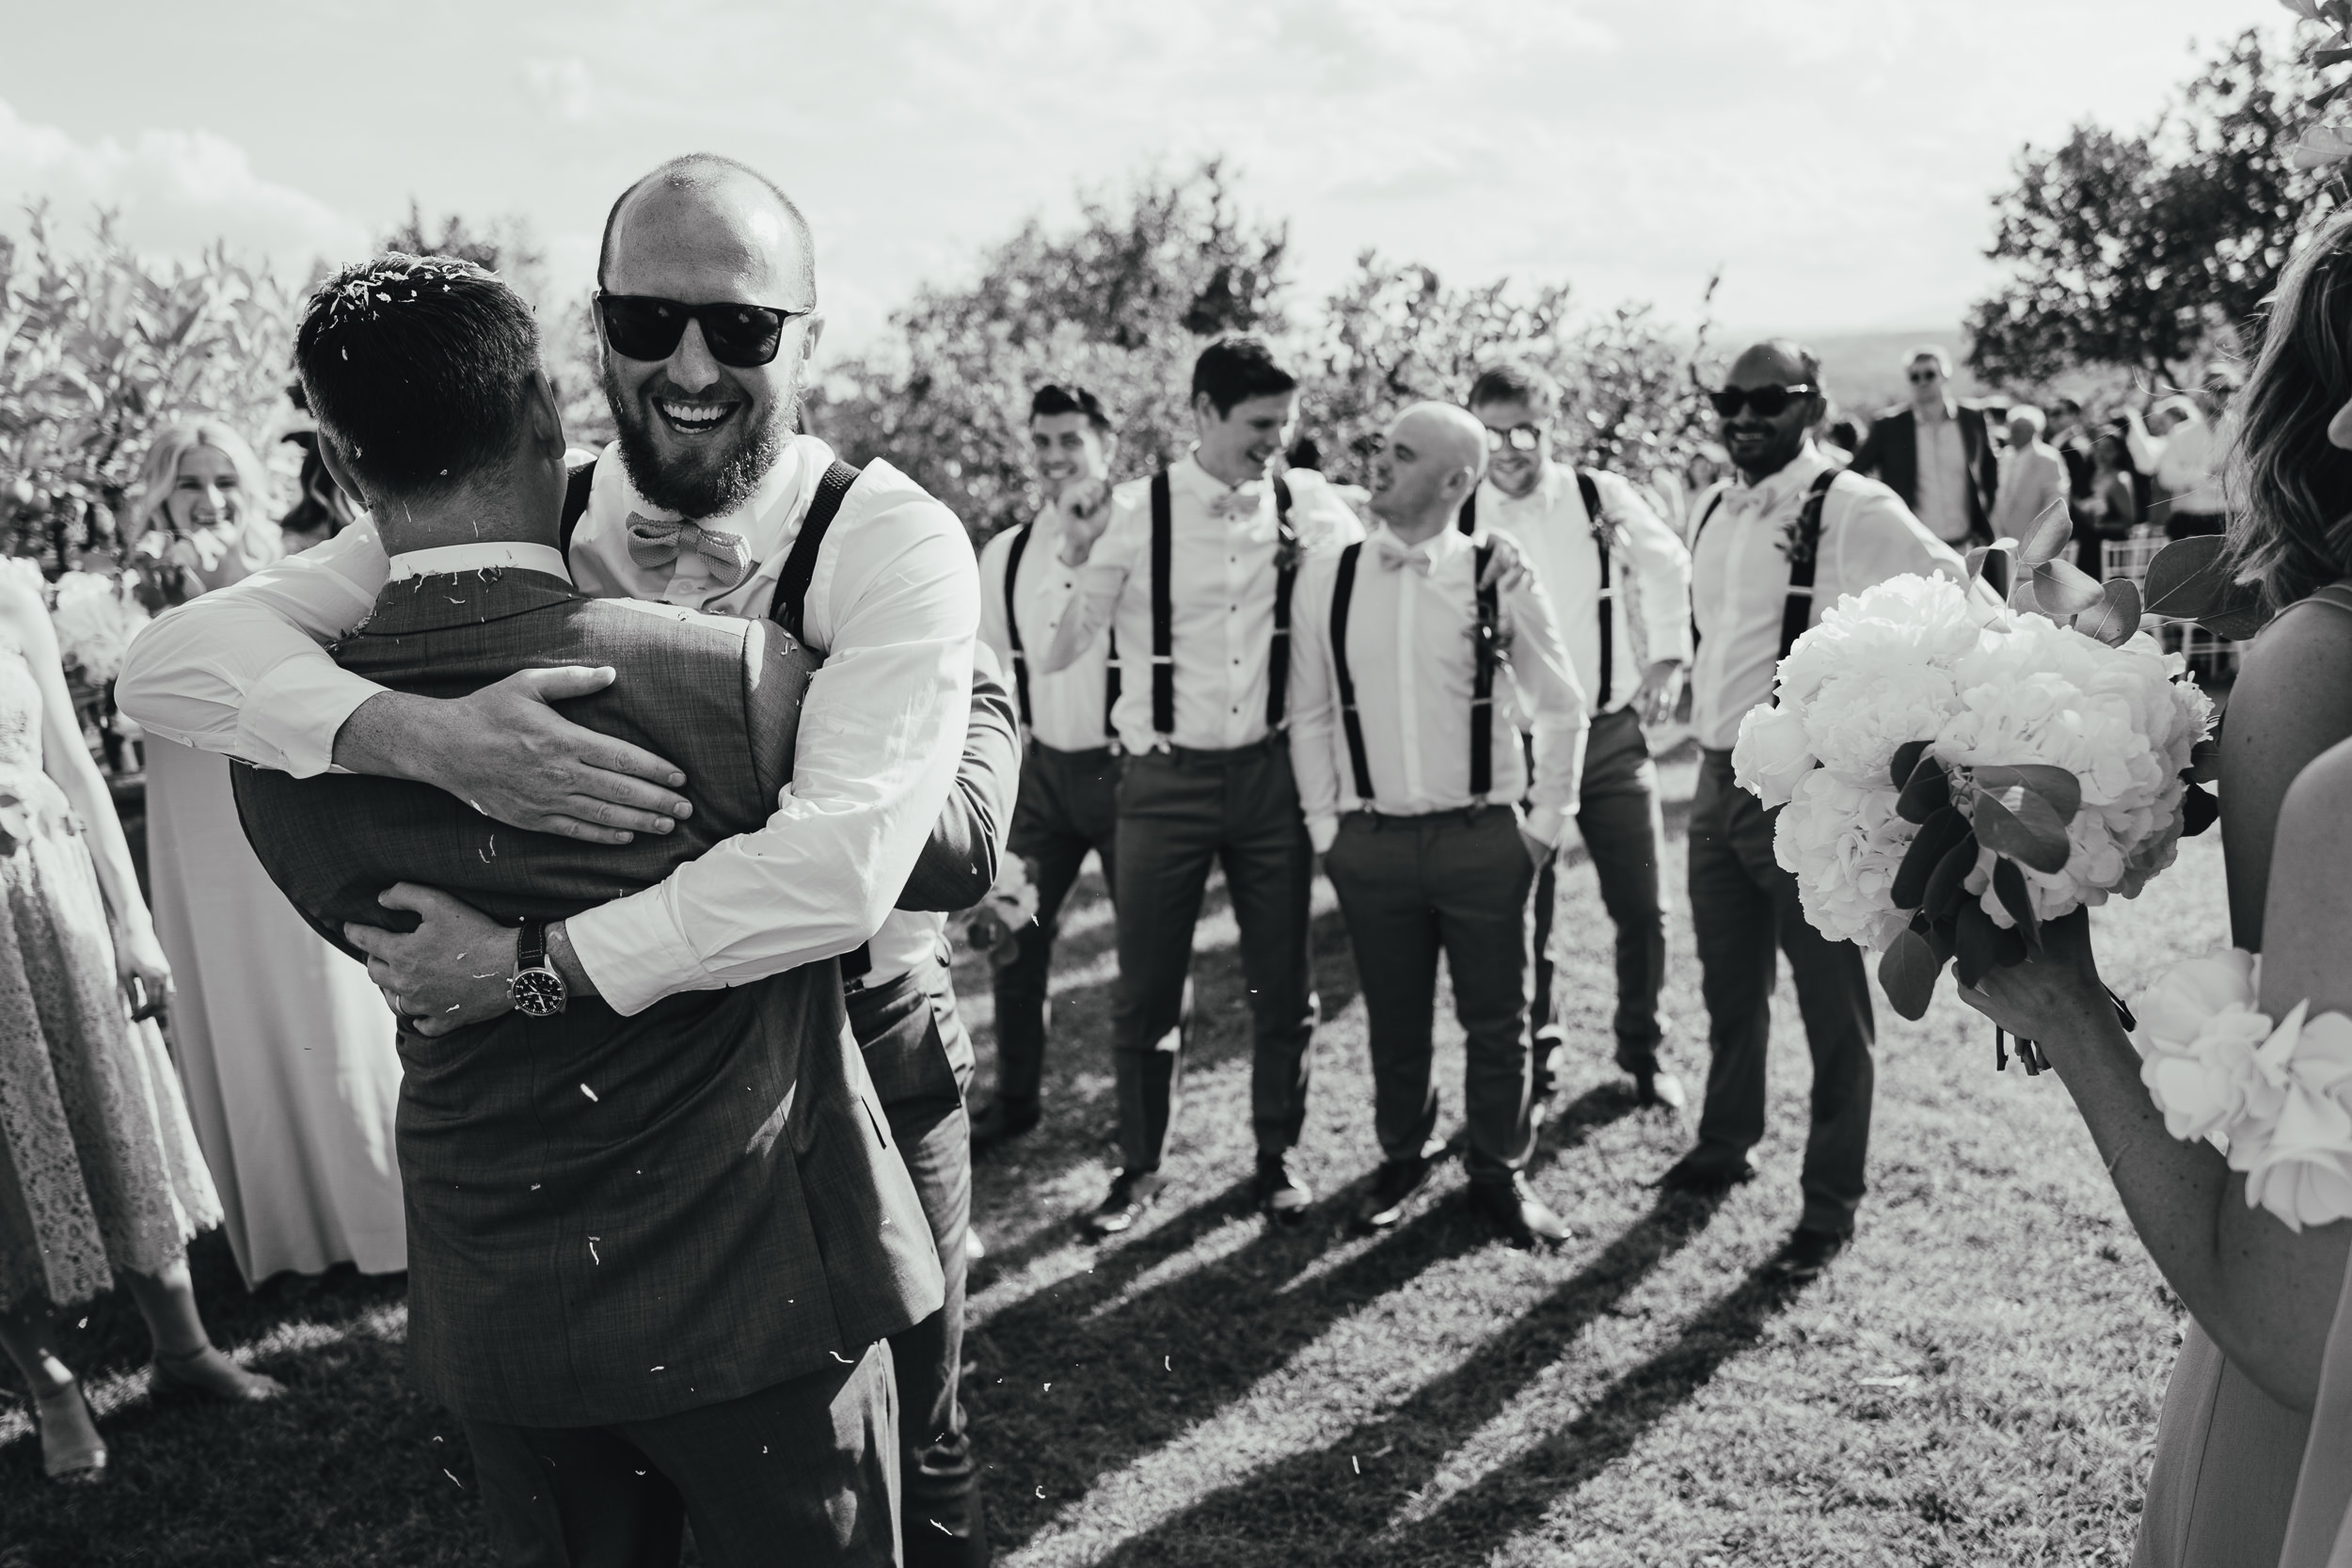 The Grooms hugs his Best Men